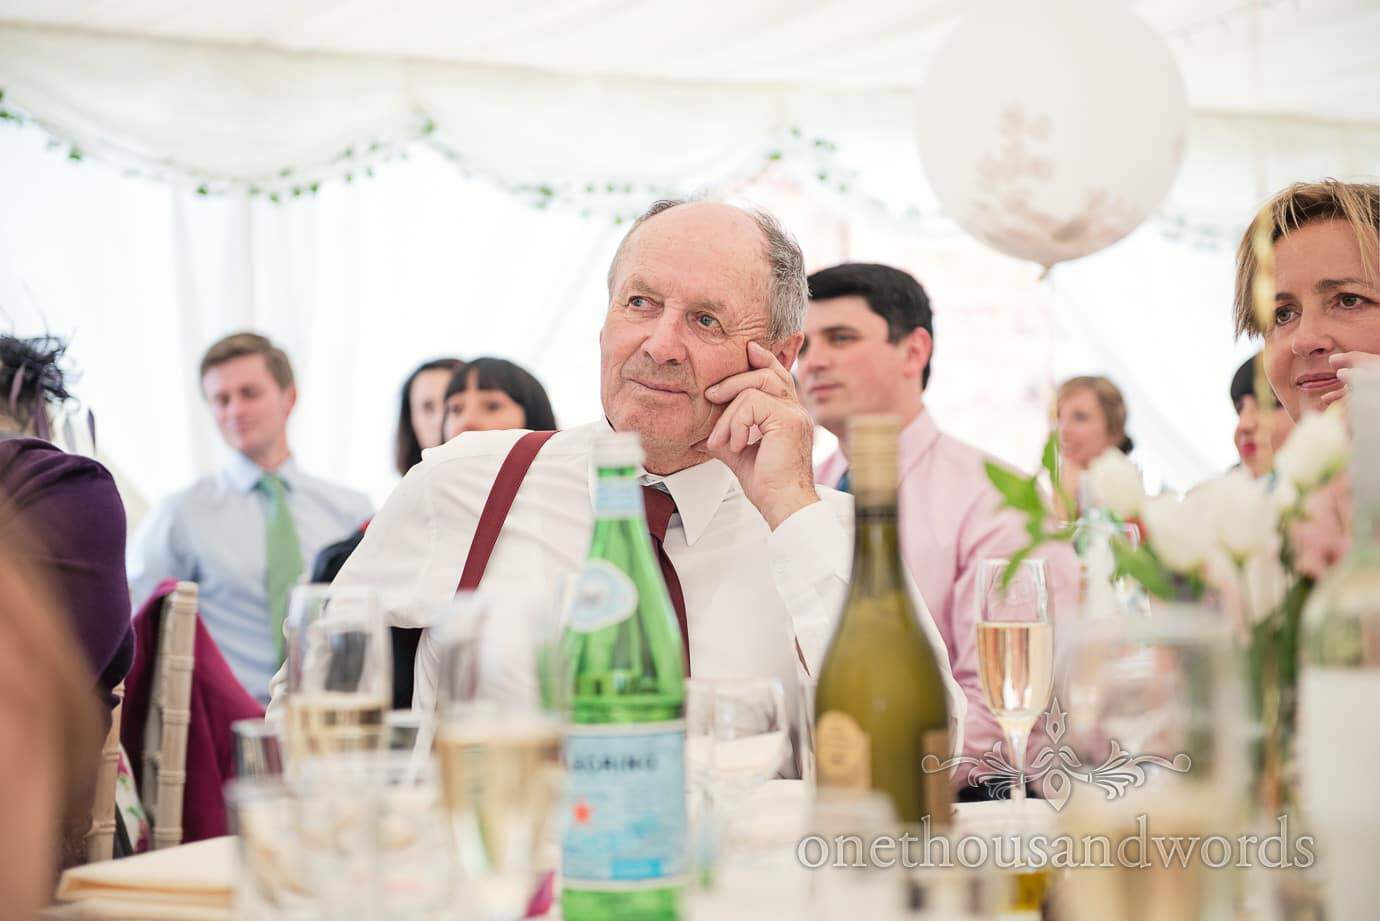 Elderly wedding guest in red braces and red tie listens to wedding speeches in marquee